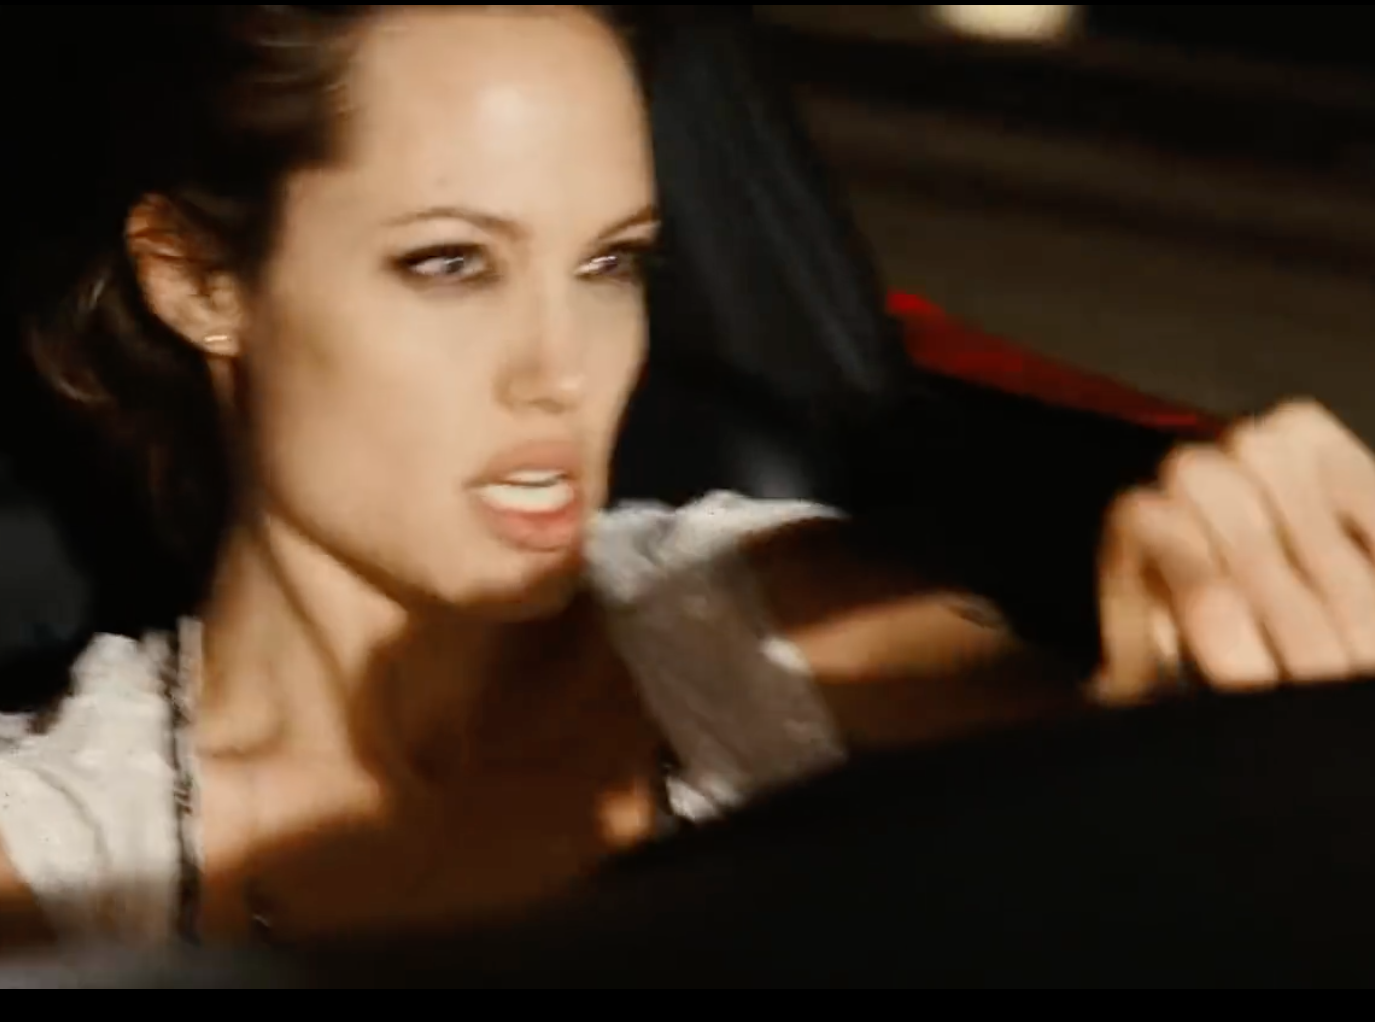 Screenshot 2021 03 25 at 14.45.27 e1616683565935 20 Fascinating Facts About Angelina Jolie